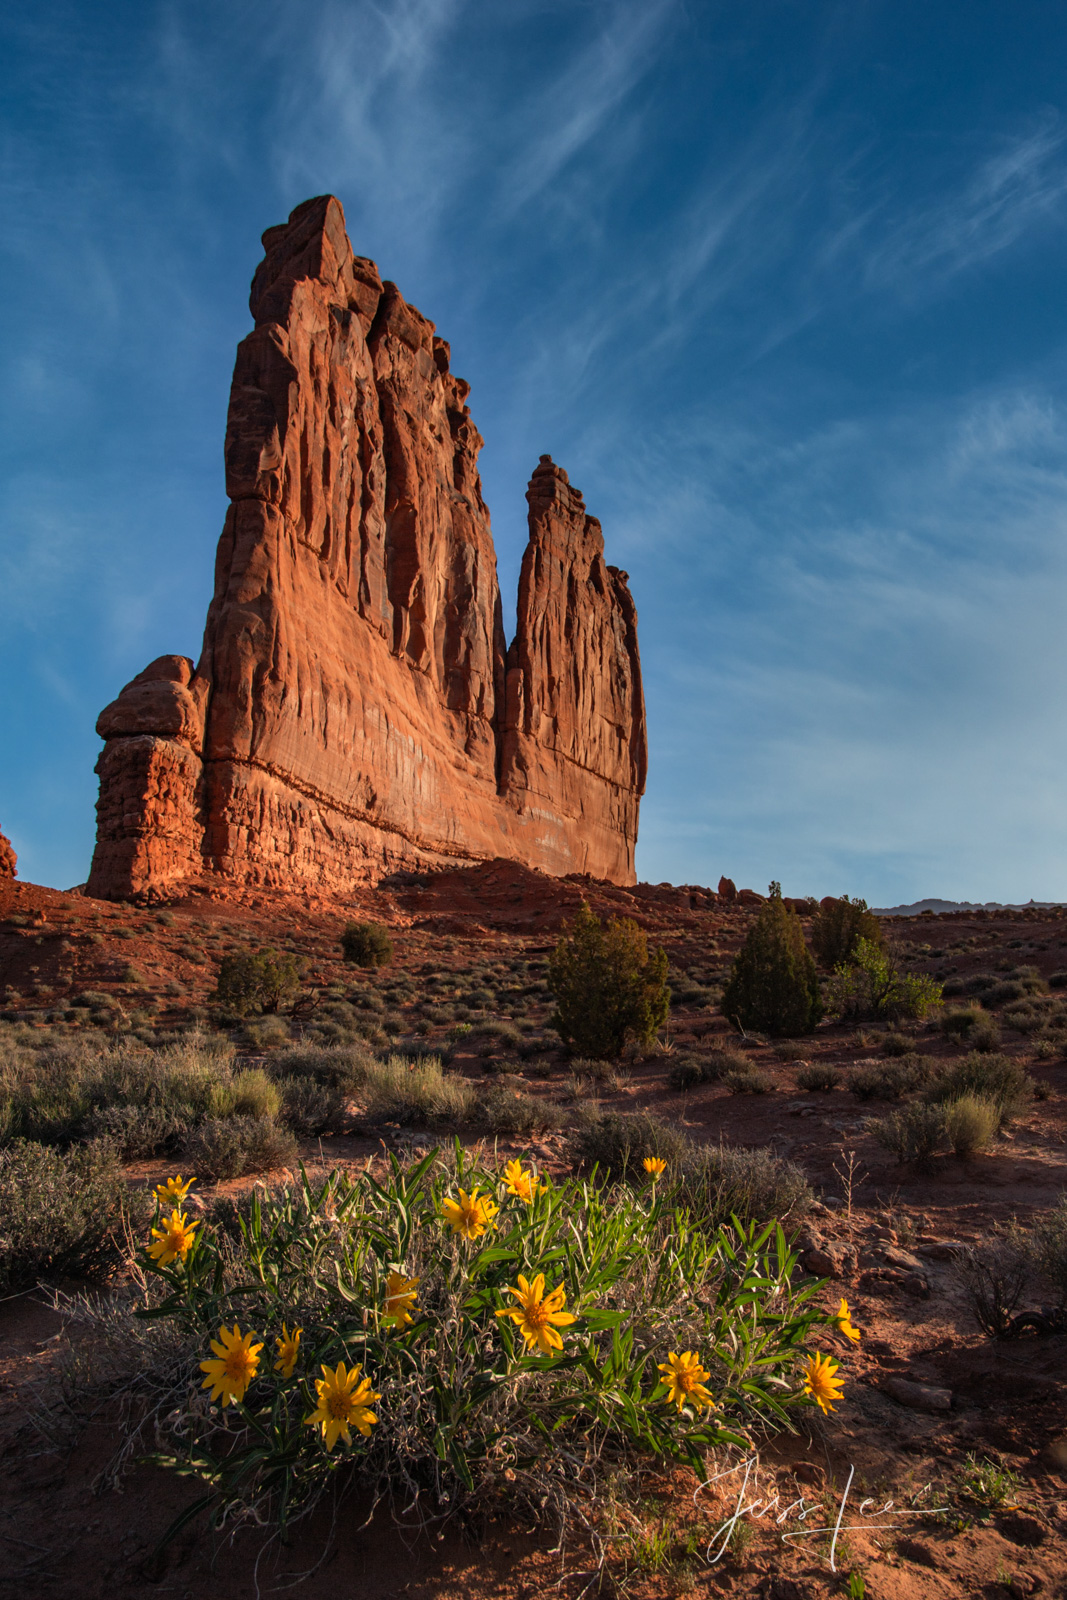 FINE ART LIMITED EDITION PHOTOGRAPHIC PRINT OF THE COURTHOUSE IN ARCHES NATIONAL PARK Arches Courthouse Landscape photo print...